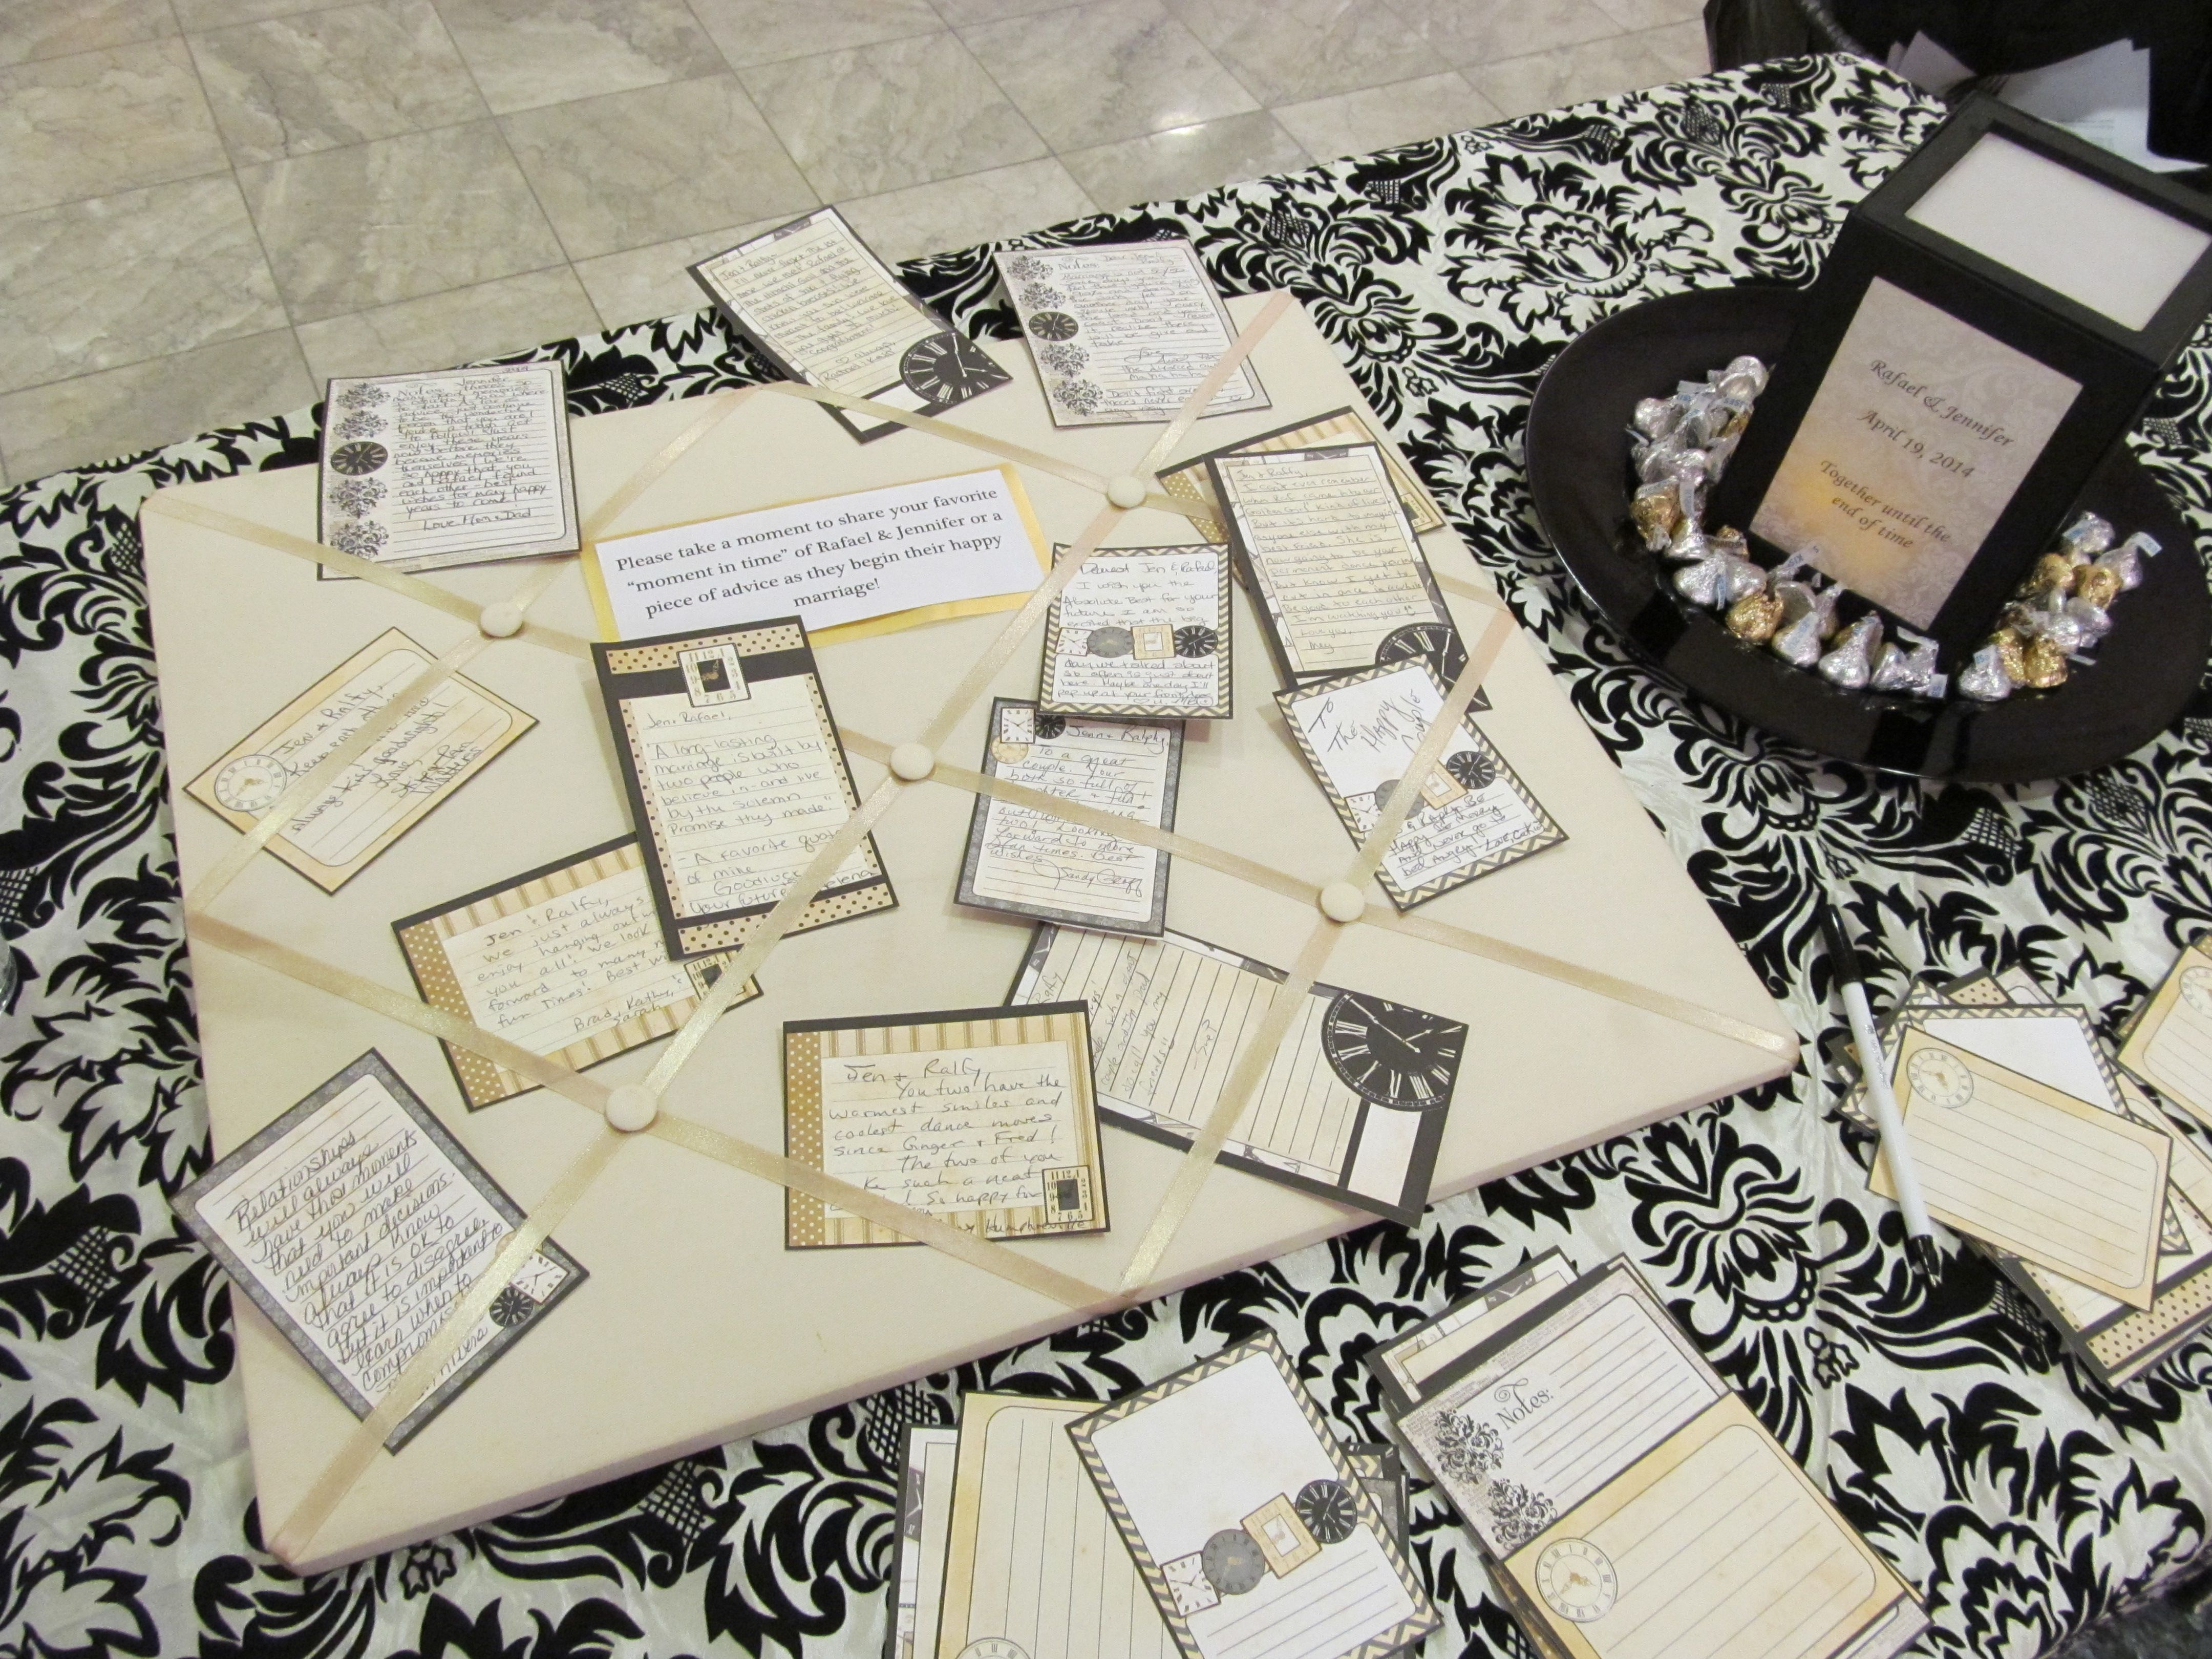 bridal shower party clocks memory board guests were asked to write down their favorite memory in time